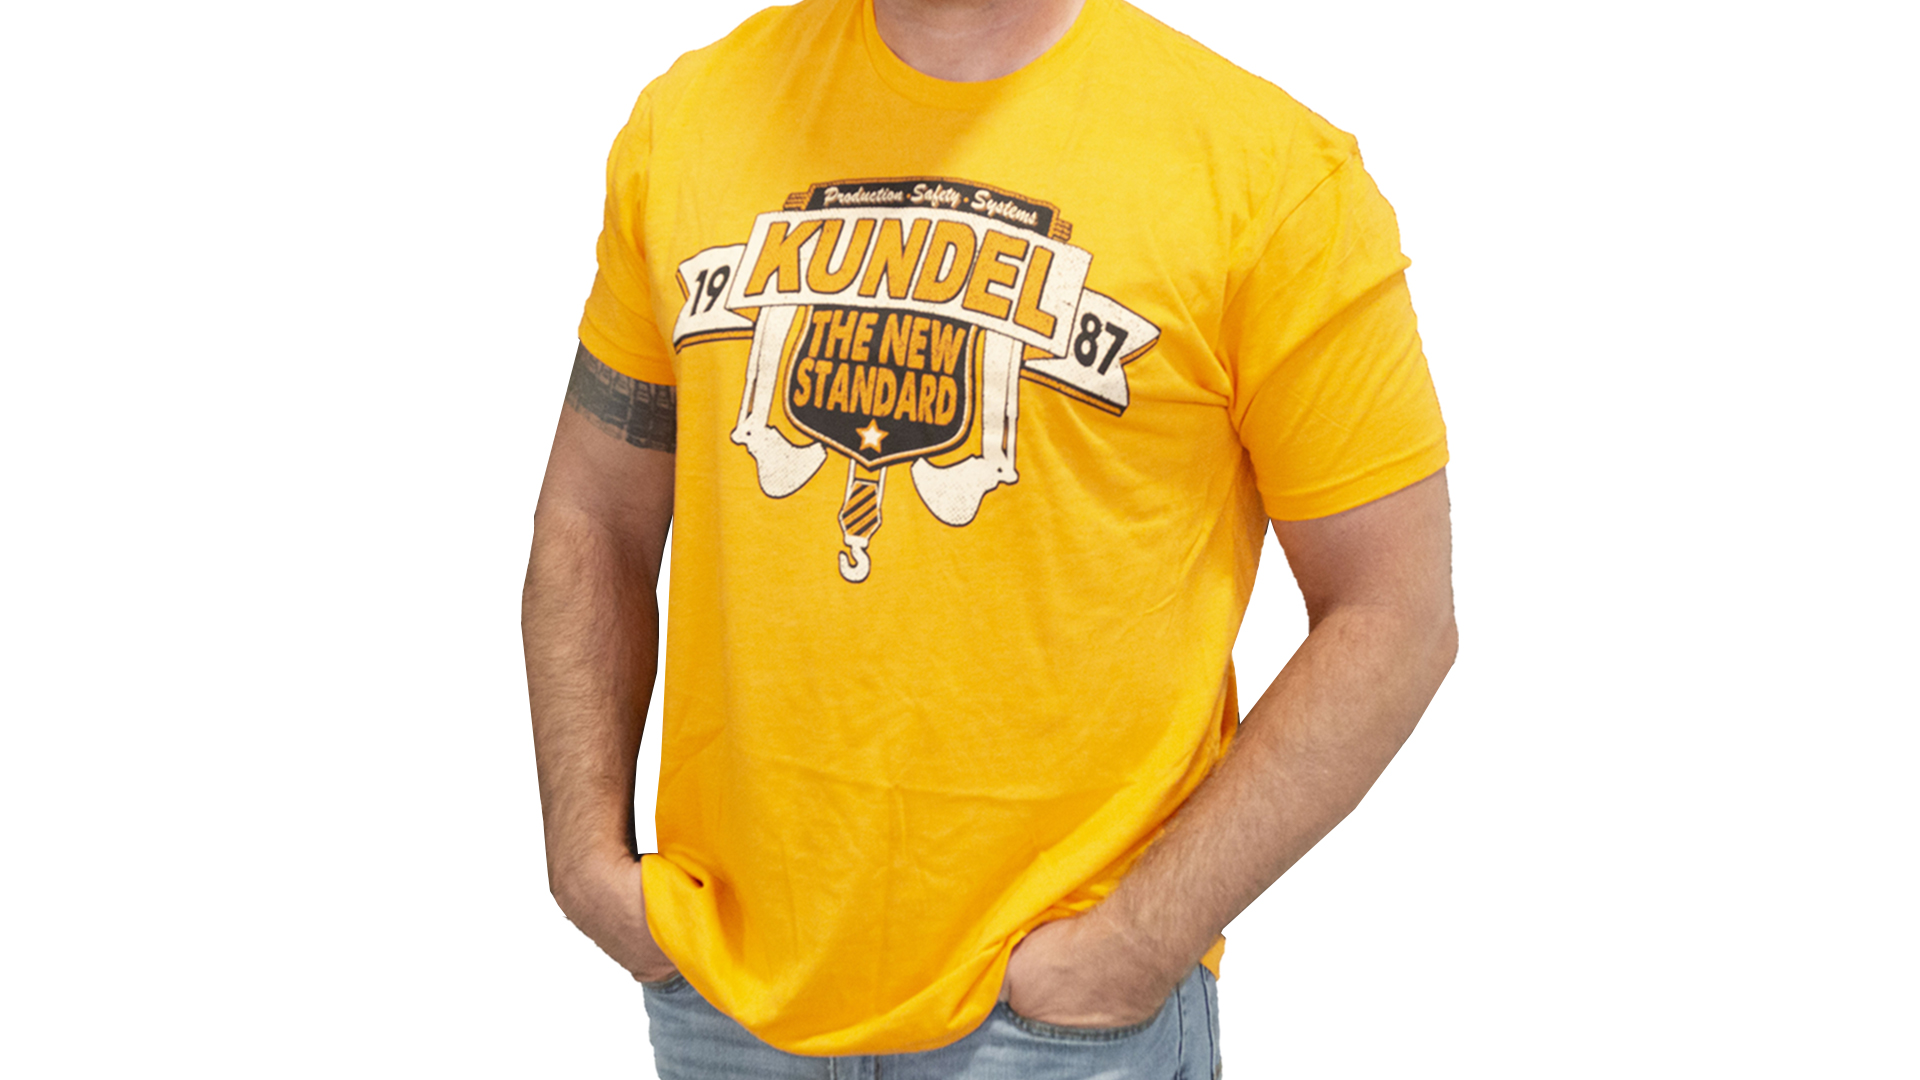 Orange Kundel T-Shirt - T-Shirt - The New Standard - Family Owned